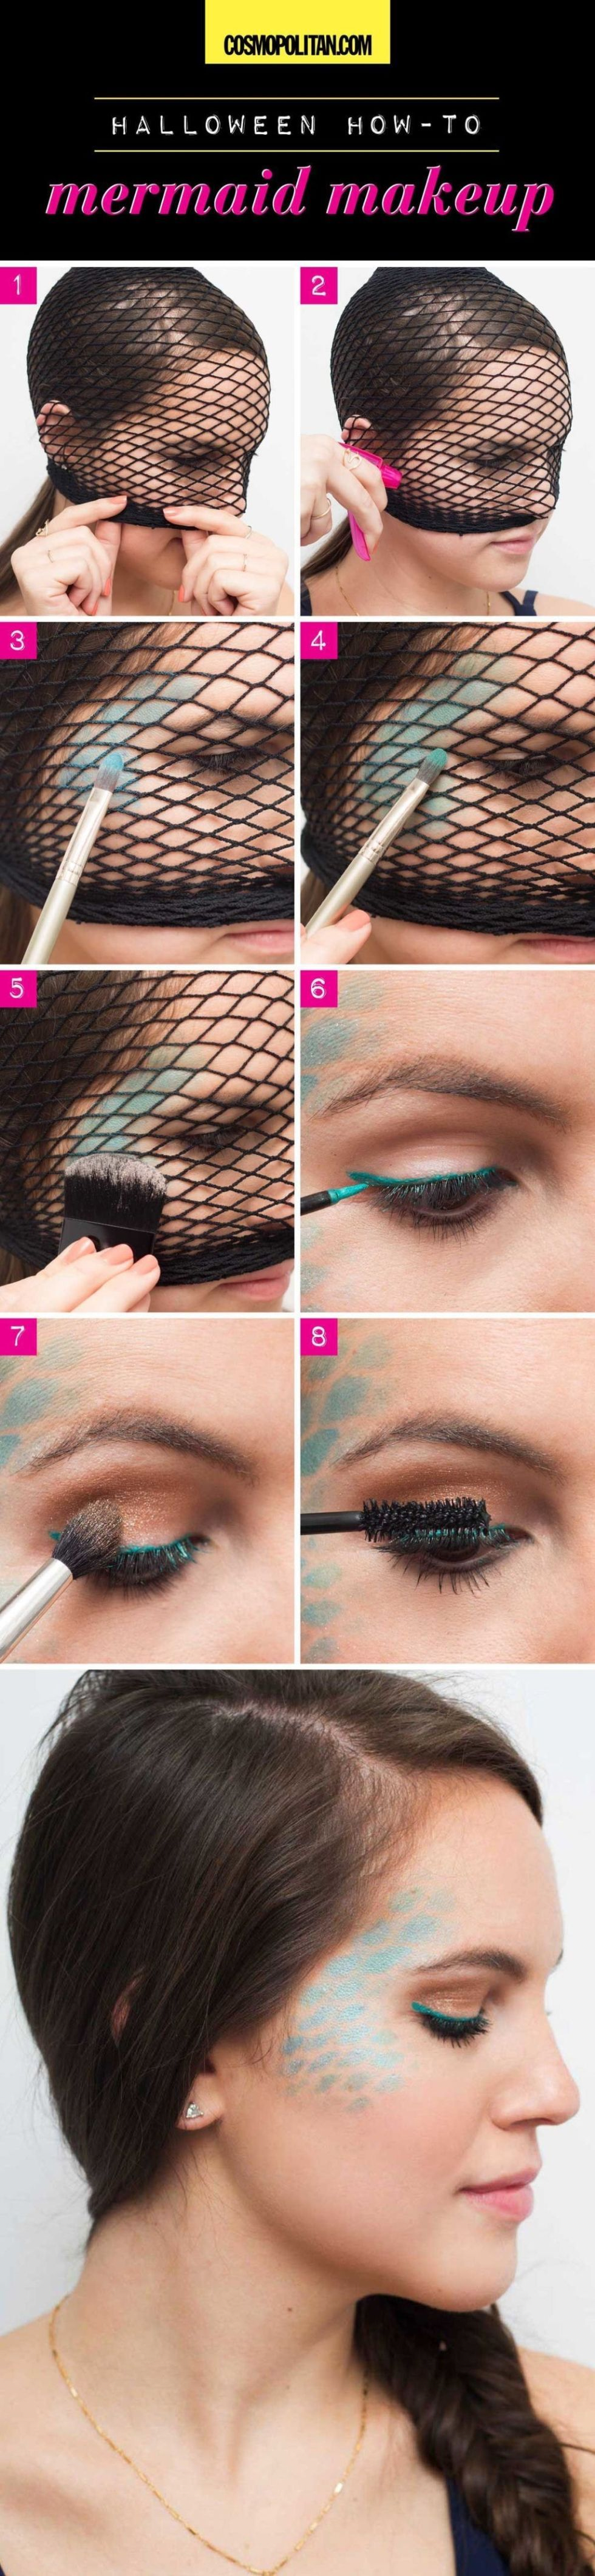 Halloween Makeup Ideas Easy Makeup Looks.10 Quick Halloween Looks You Can Create With Makeup You Already Own